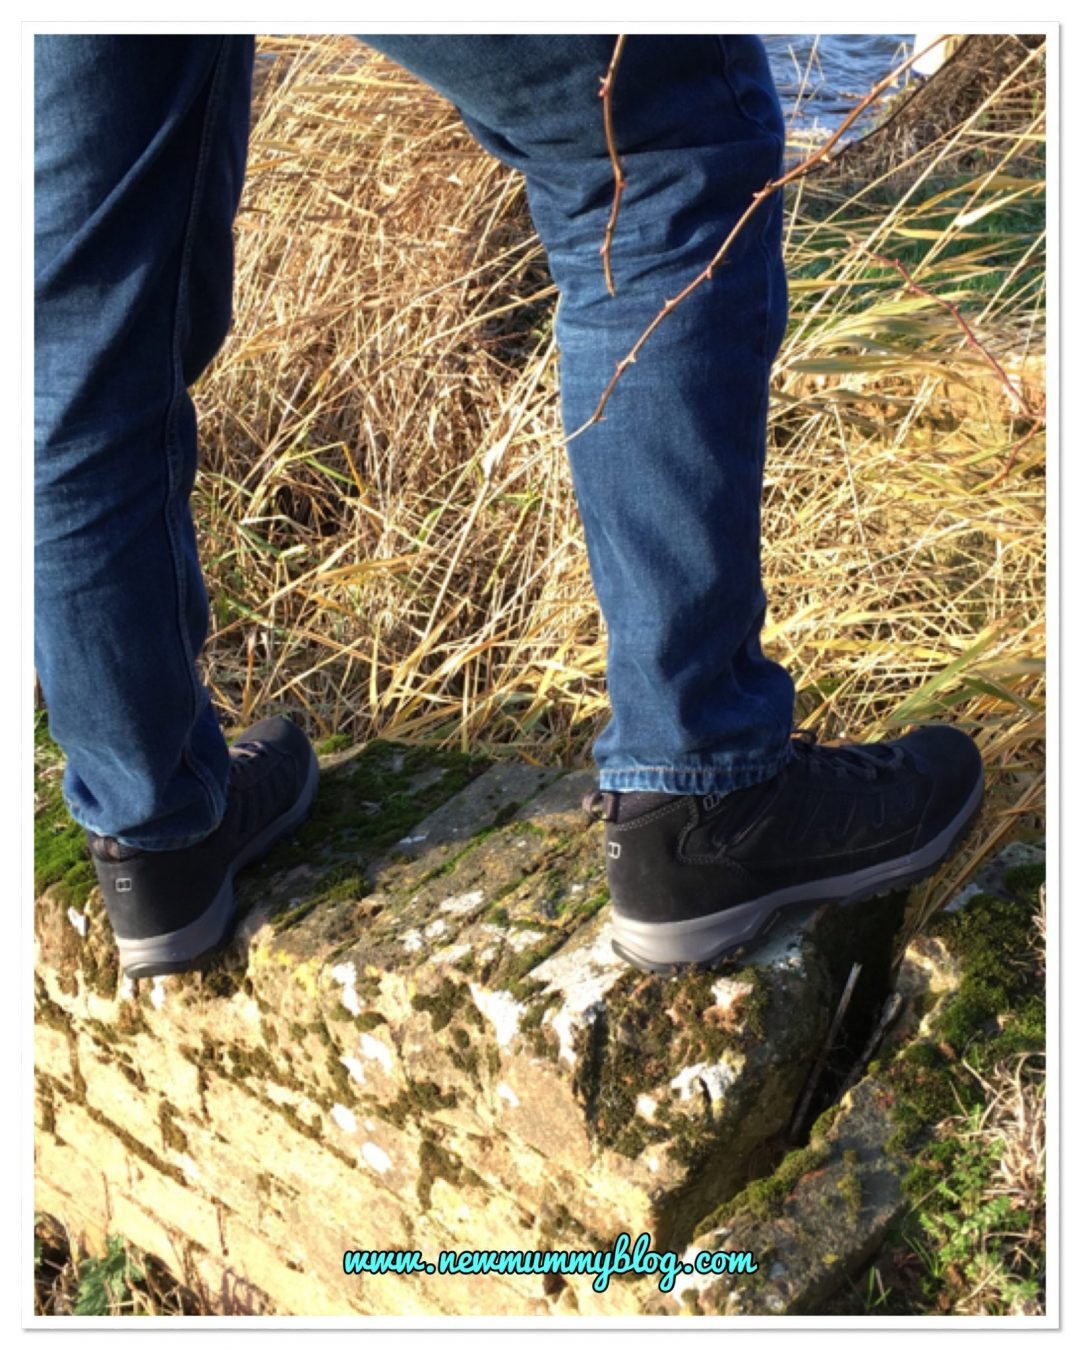 Men's outdoor wear from Blacks - Berghaus walking boots review